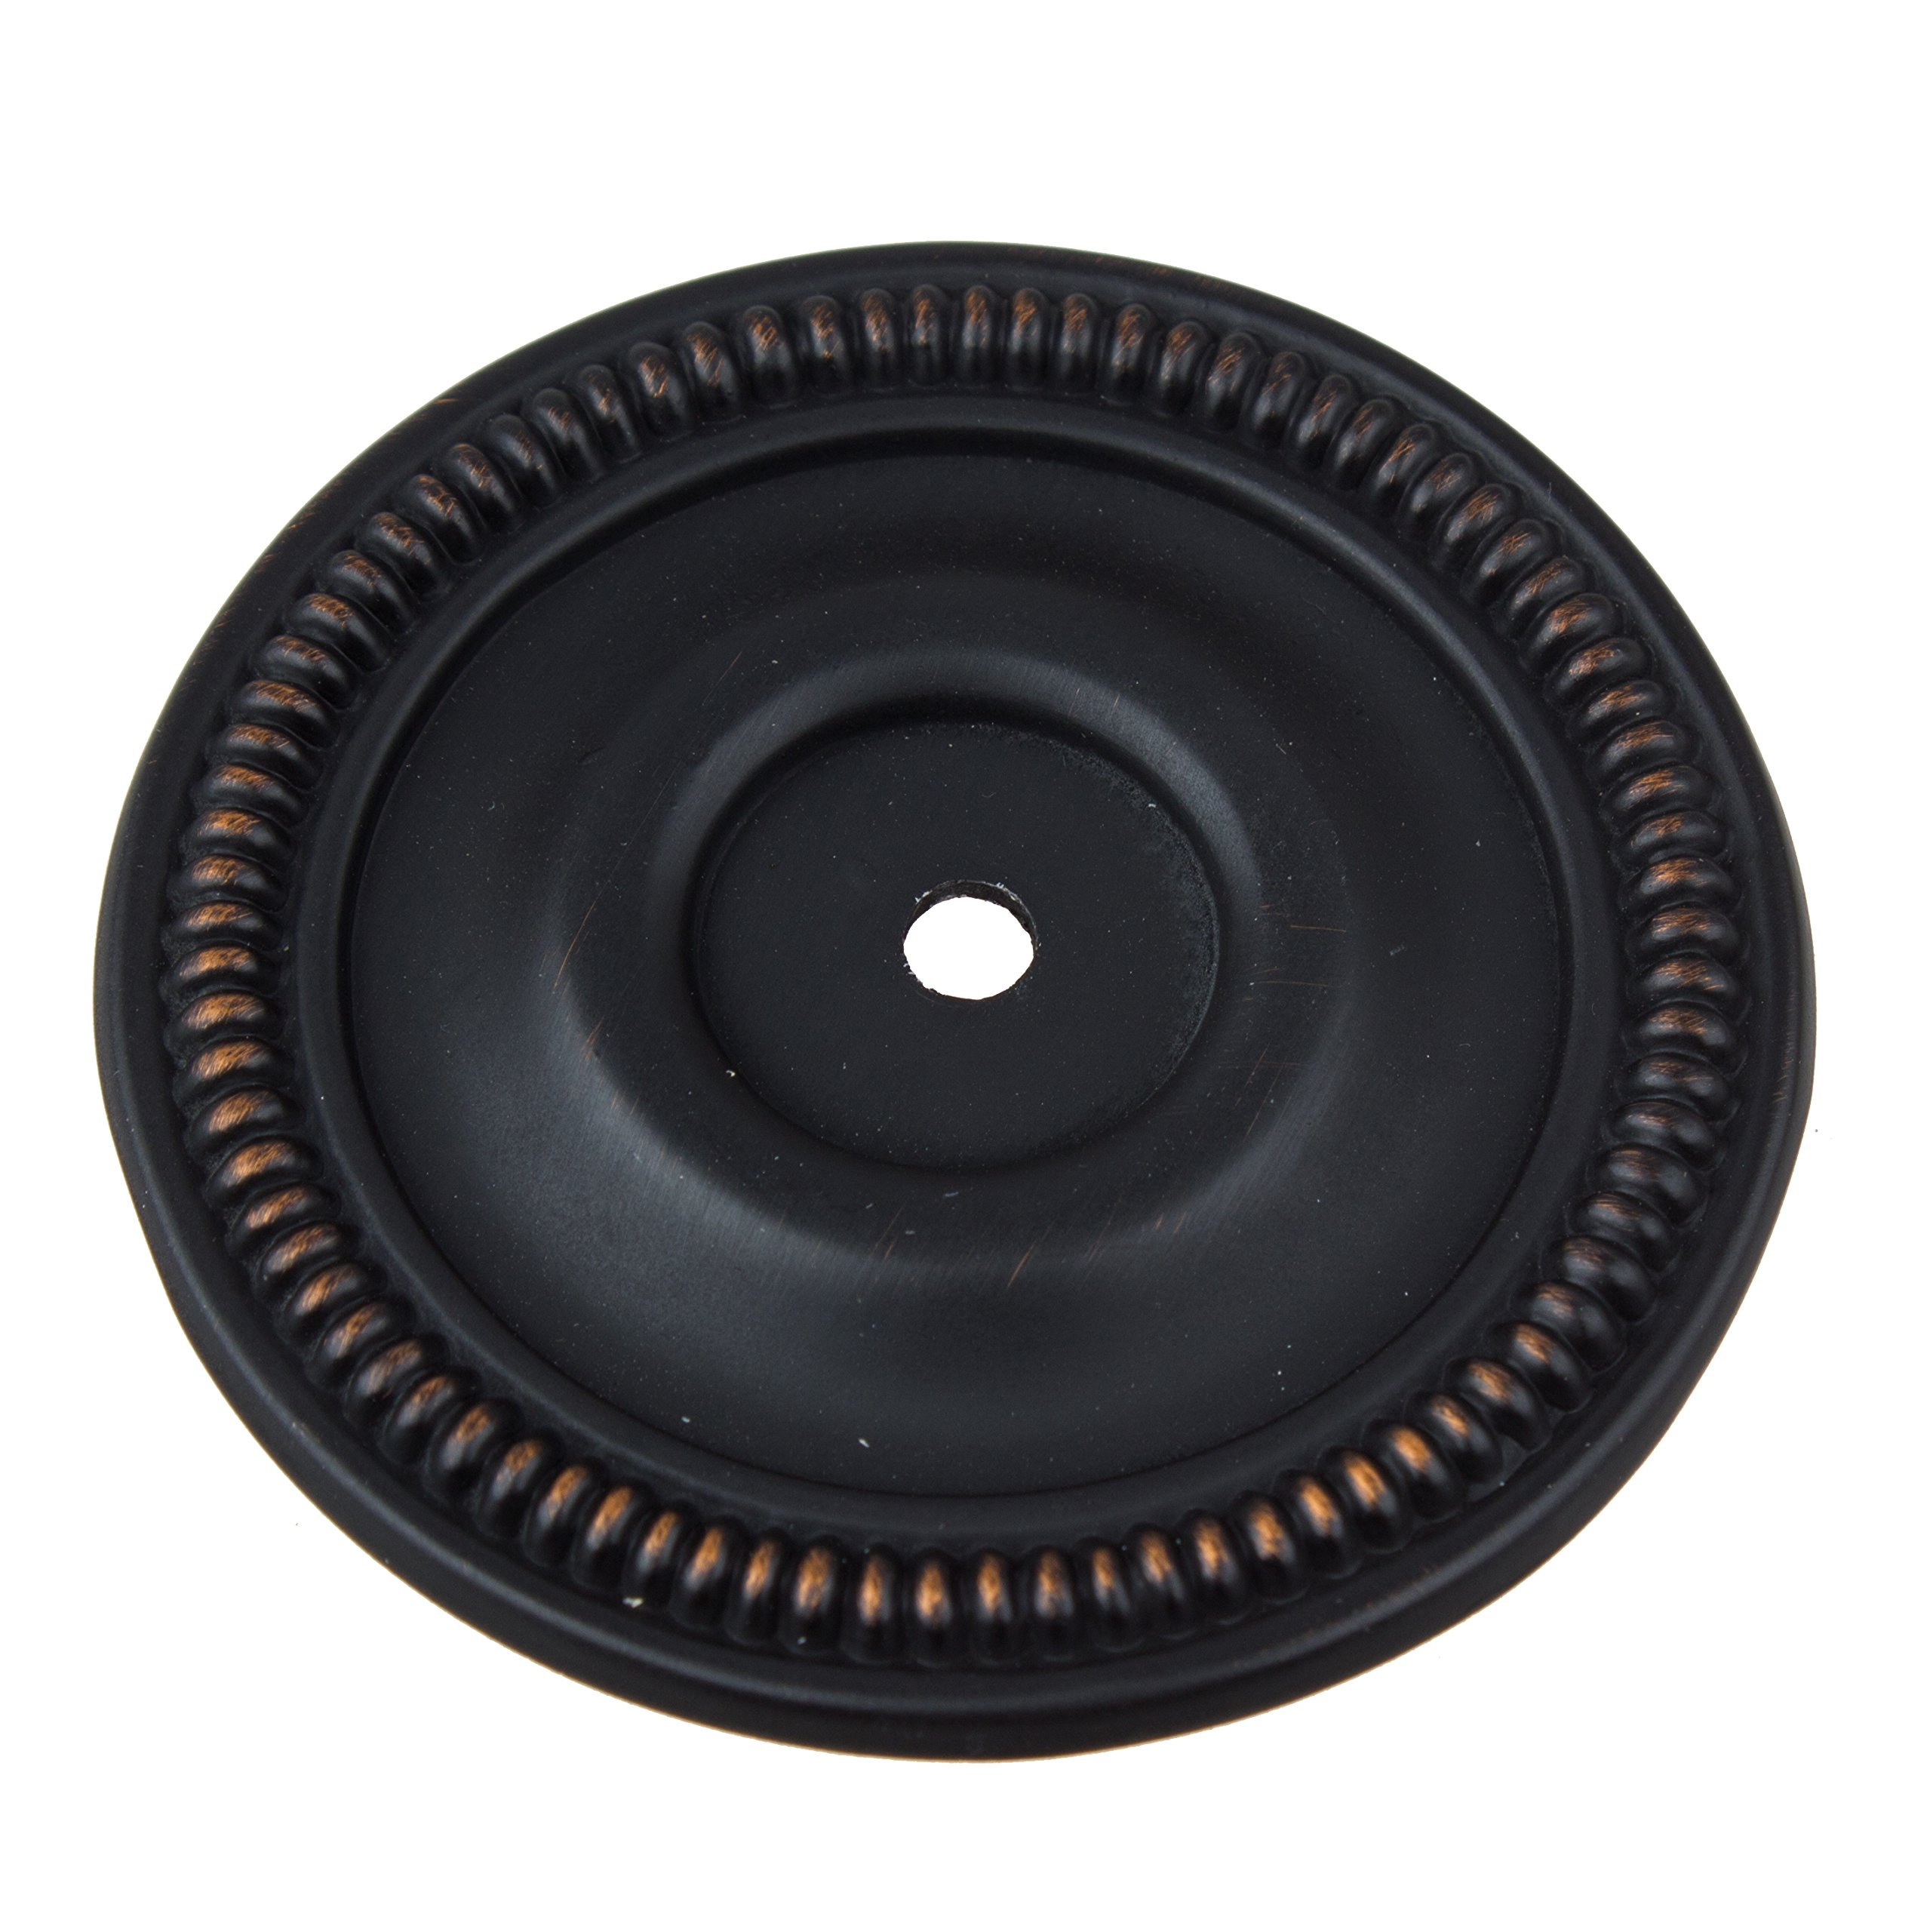 GlideRite Hardware 5060-ORB-50 Round Cabinet Back Plate, 50 Pack, 2.5'', Oil Rubbed Bronze